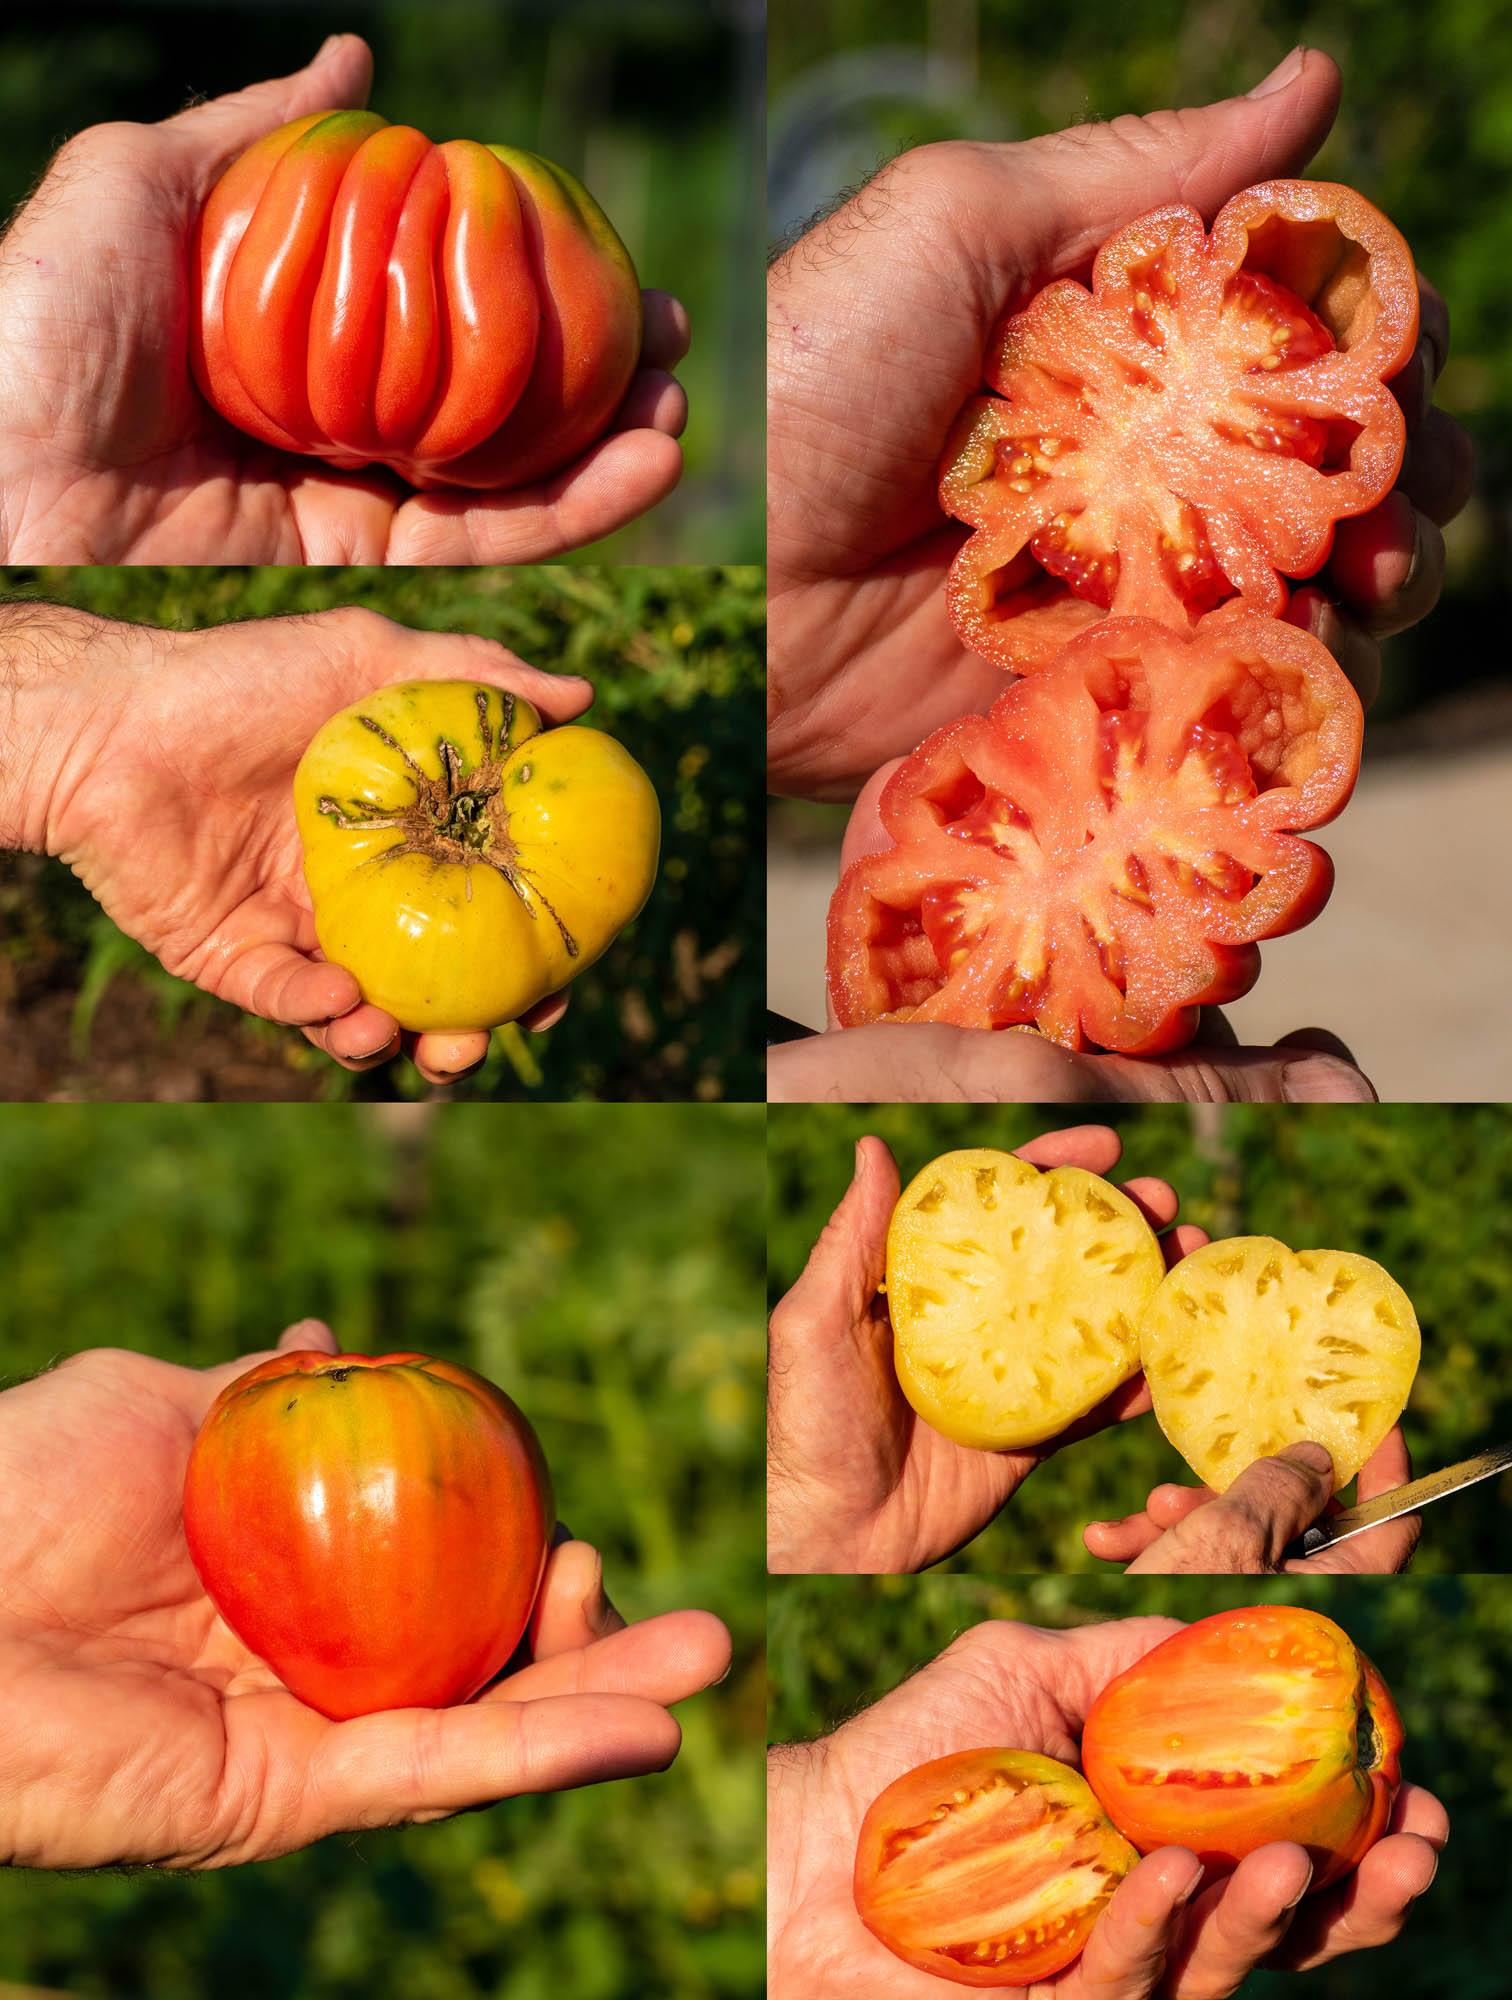 Red Gezahnte, White Queen, Russian Oxheart tomatoes